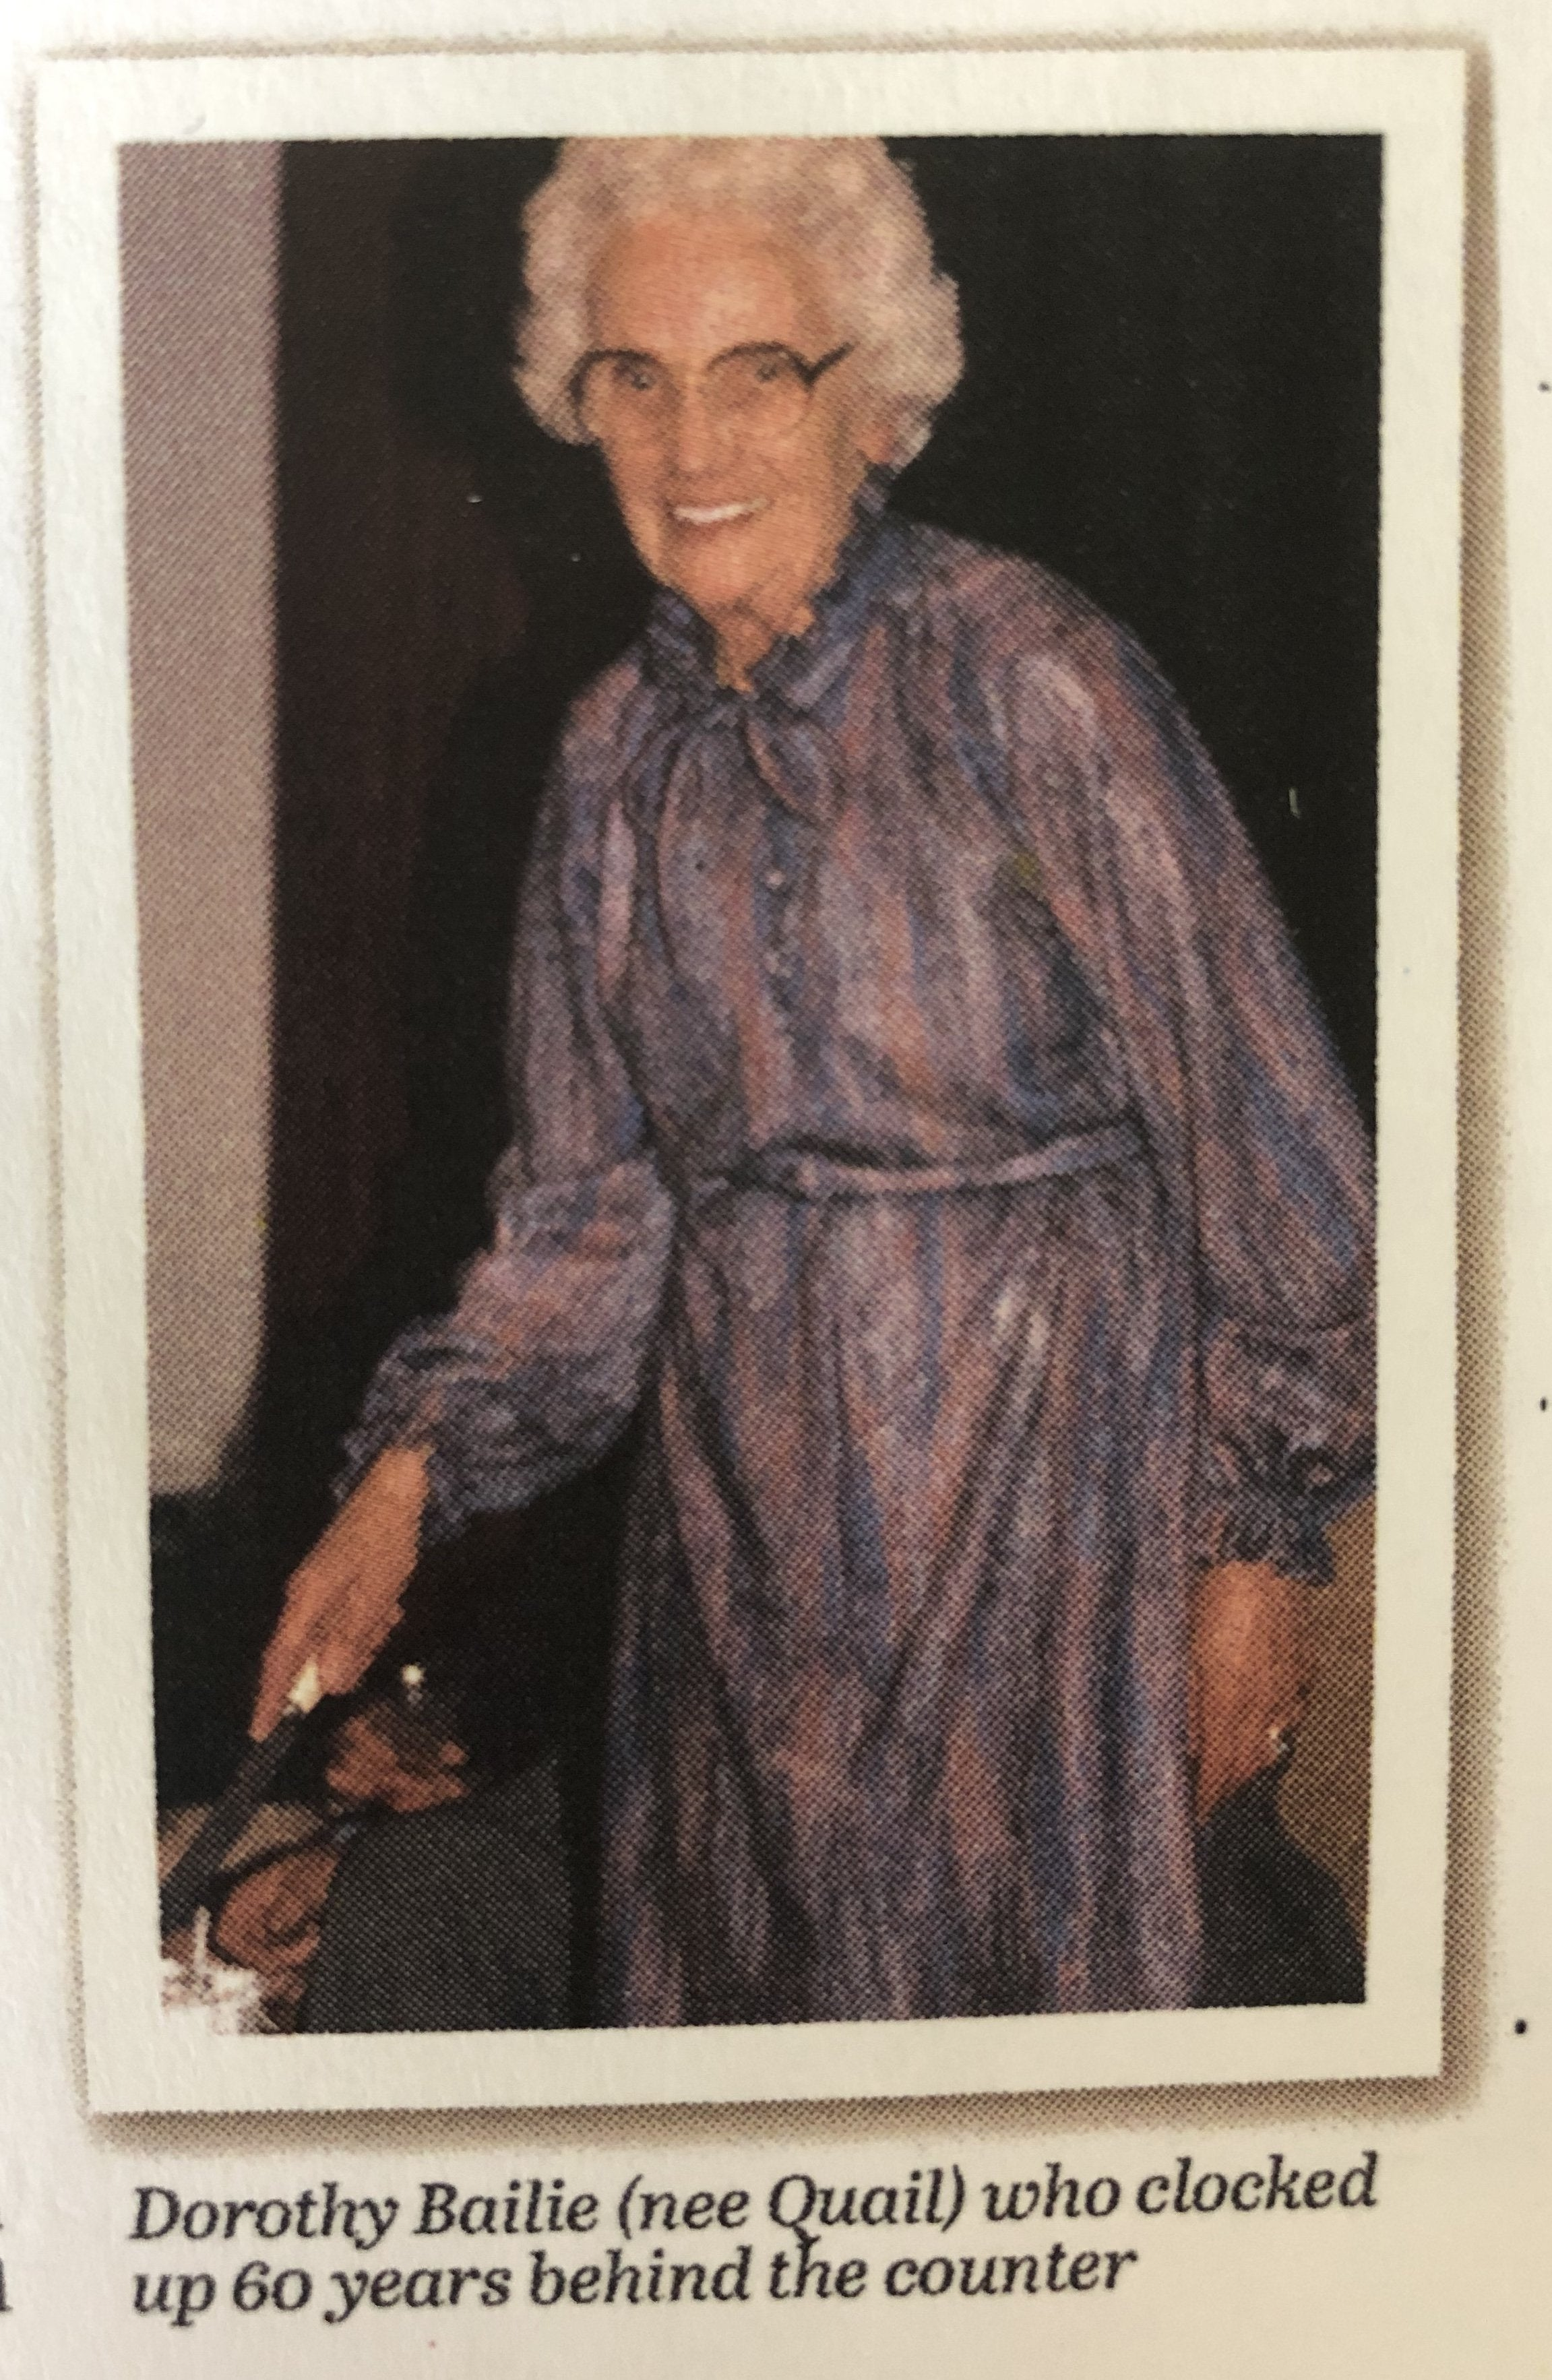 Dorothy Bailie (nee Quail) who clocked up 60 years behind the counter